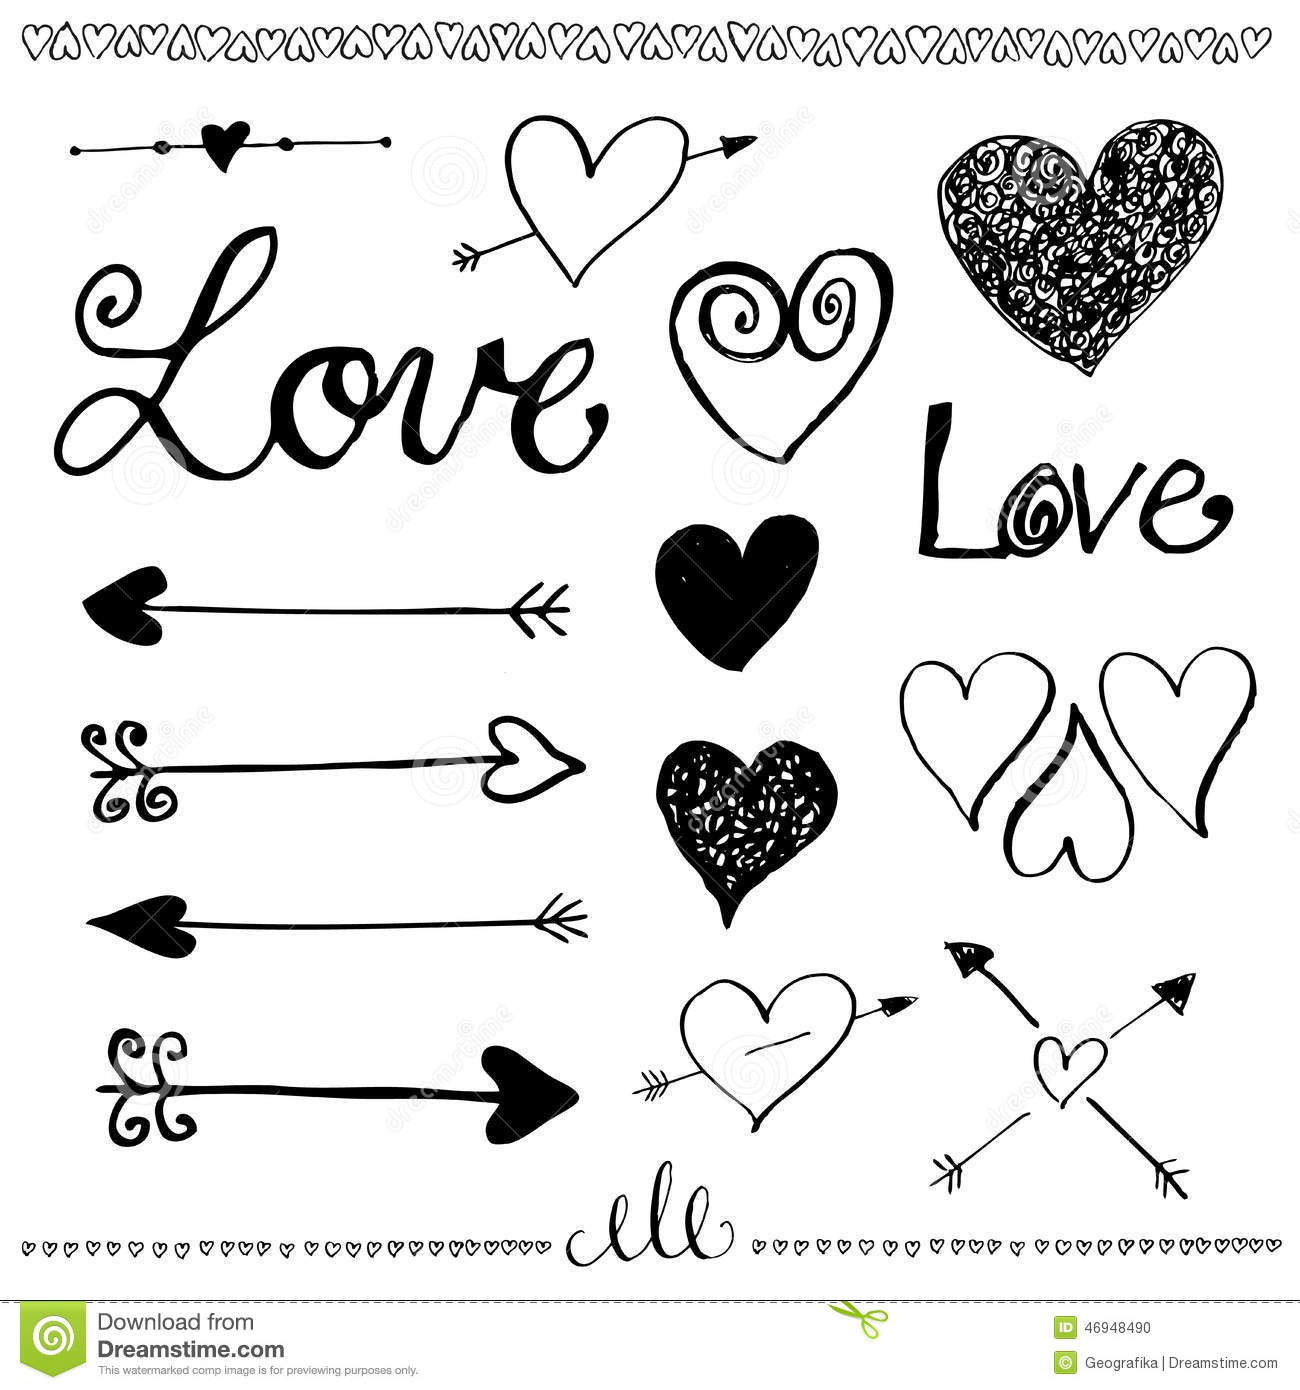 Cute arrow heart clipart transparent library Cute arrow heart clipart - ClipartFest transparent library